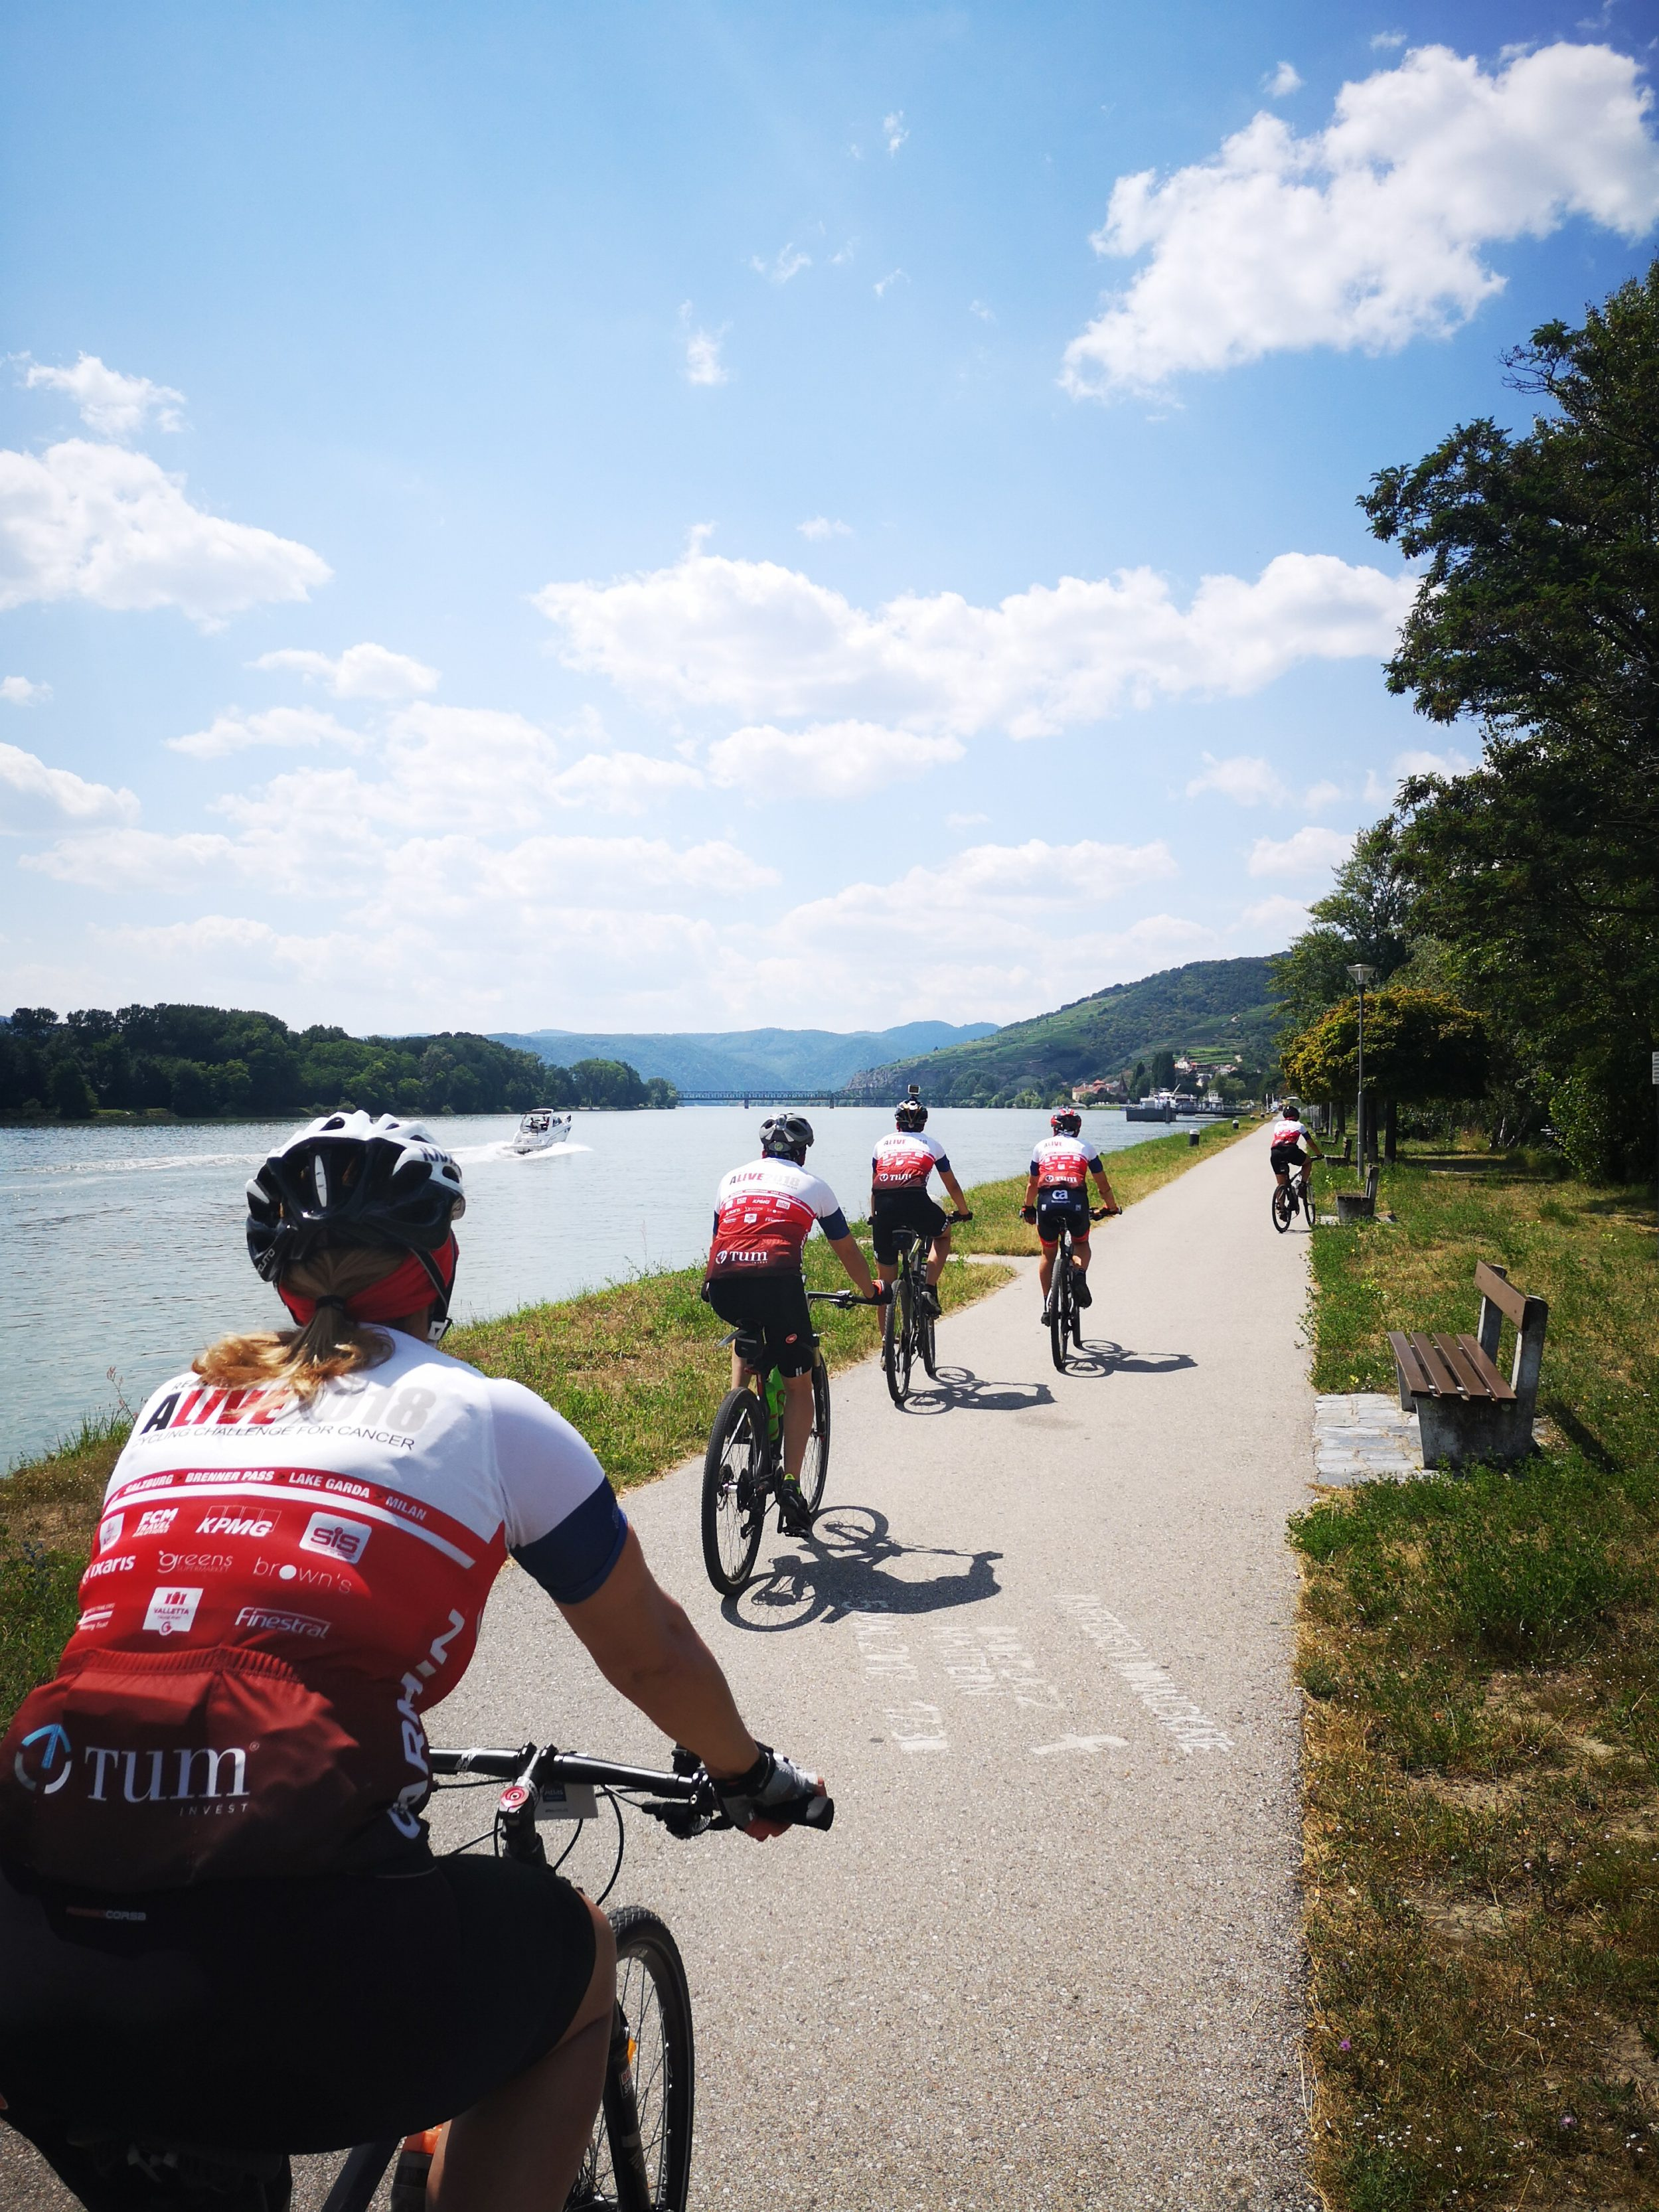 Danube cycling holidays on the Vienna to Budapest Danube cycle path